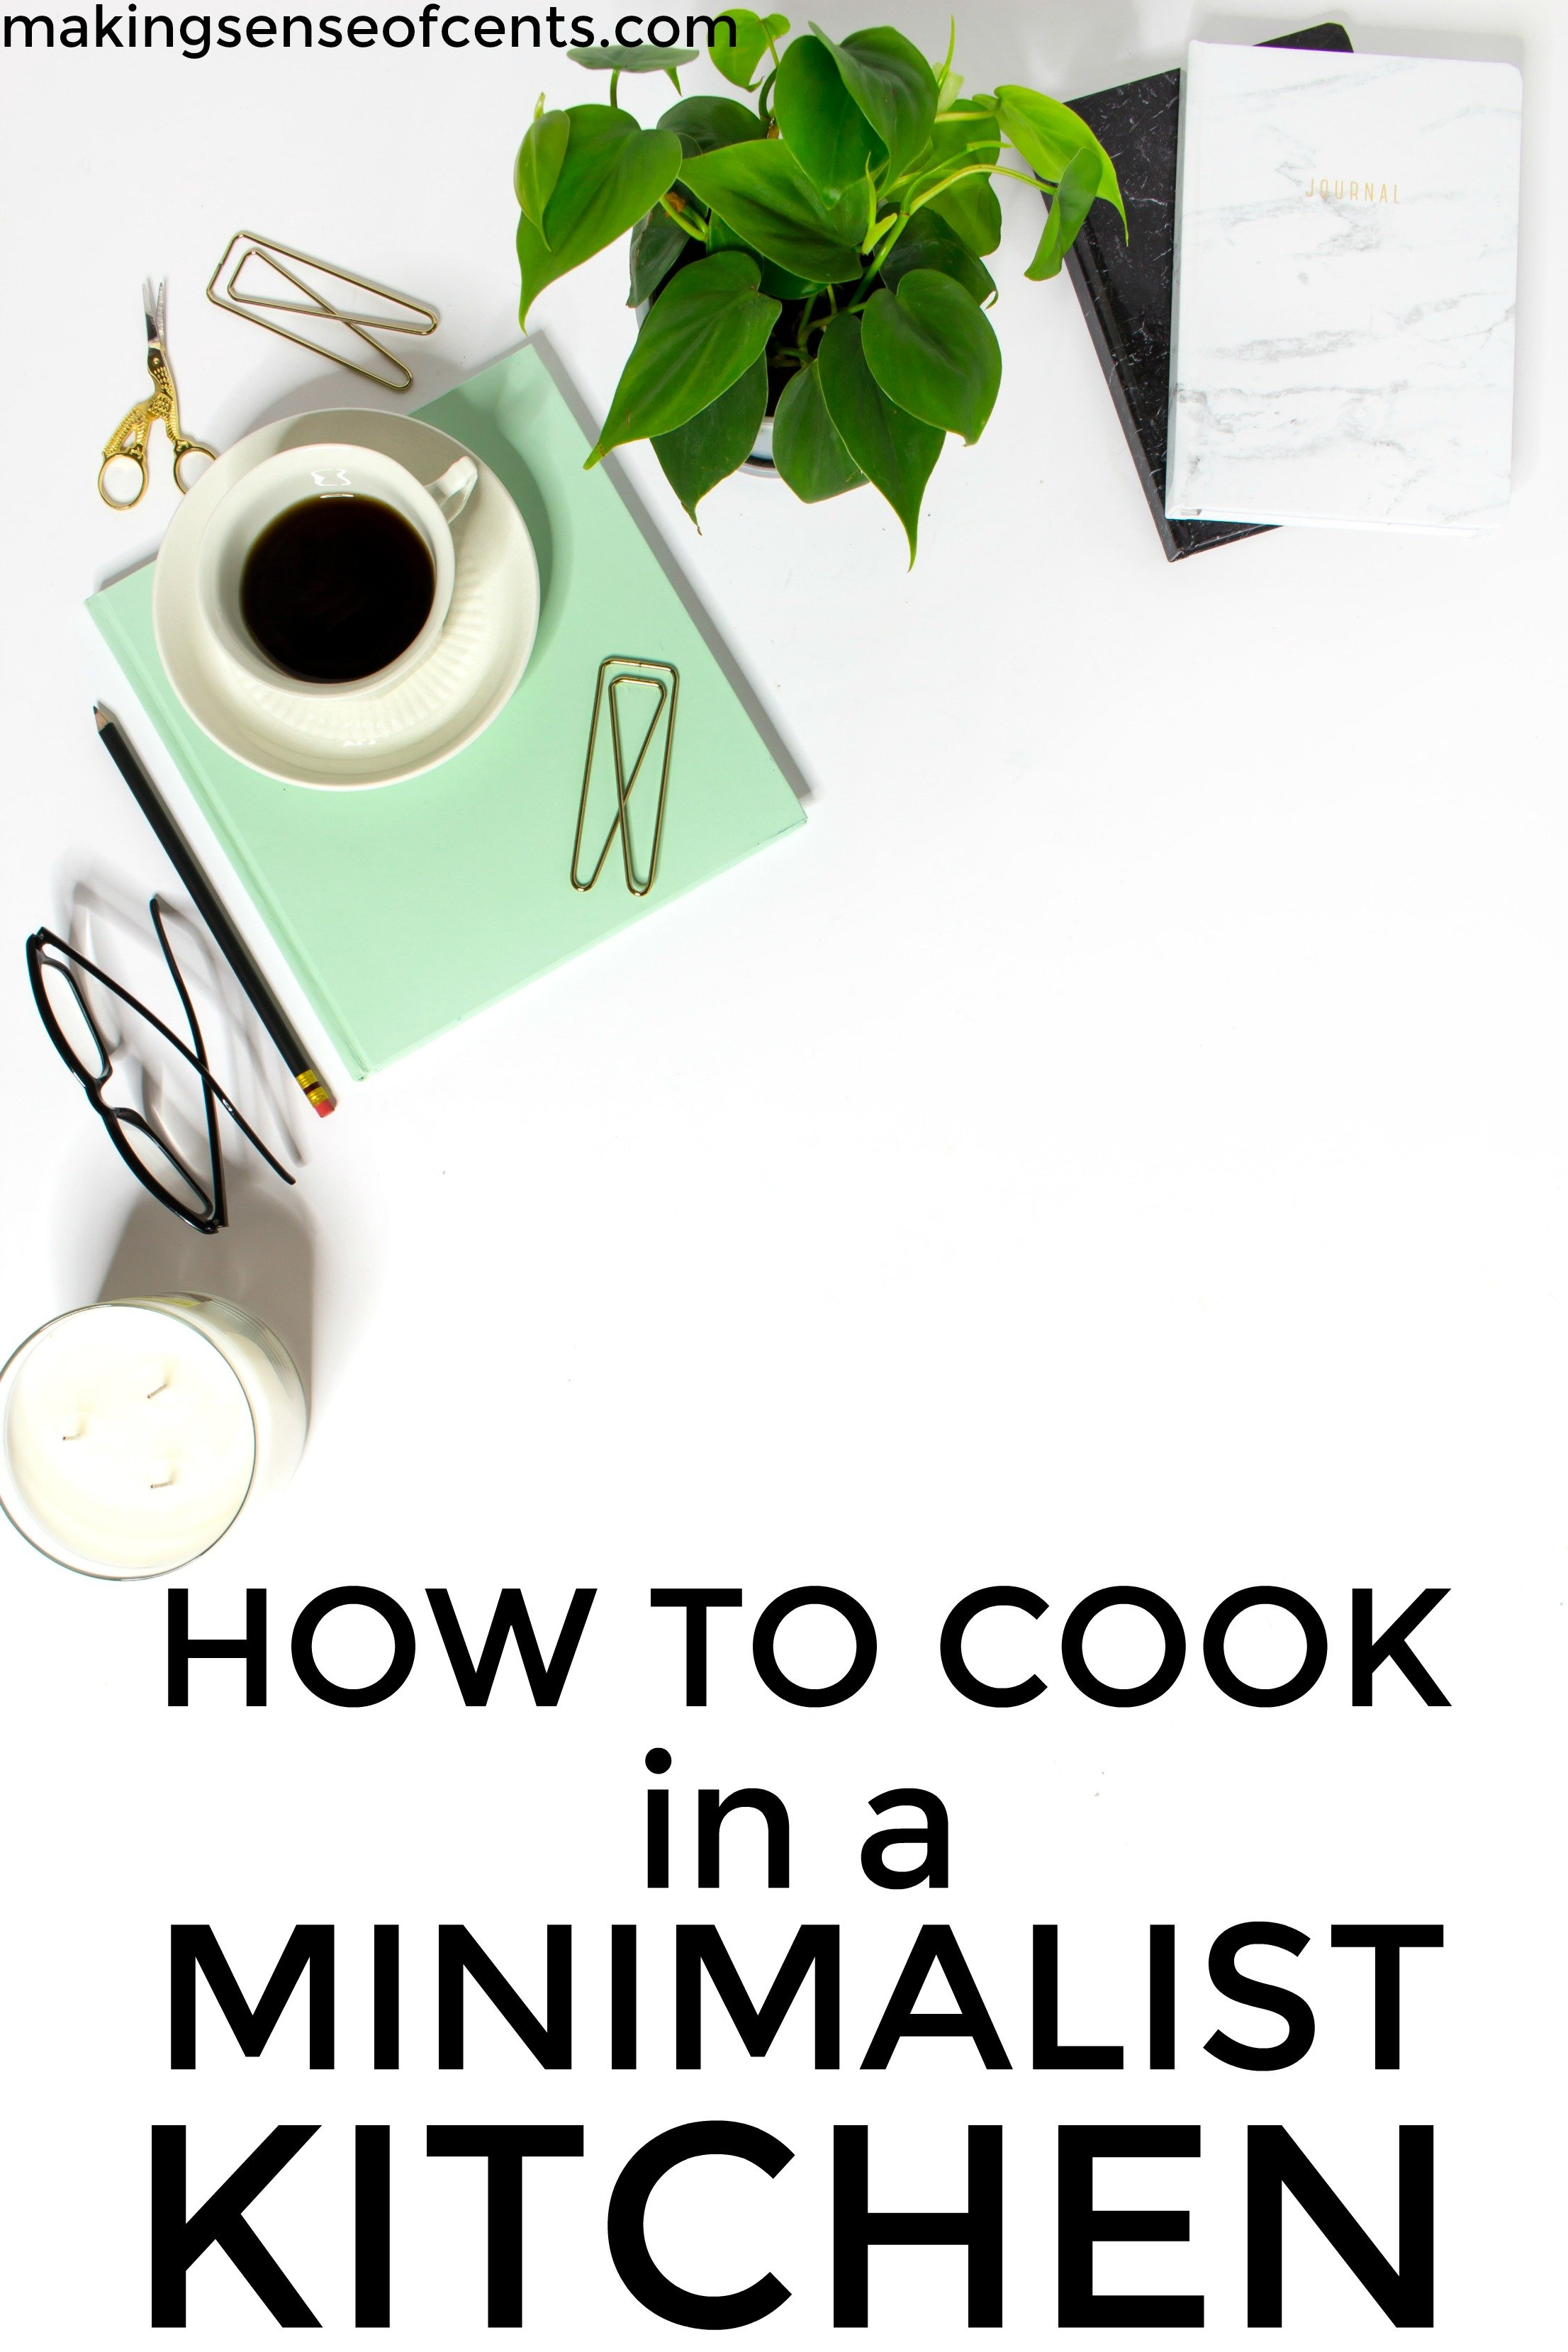 Find out how to cook in a minimalist kitchen. This is a great list!